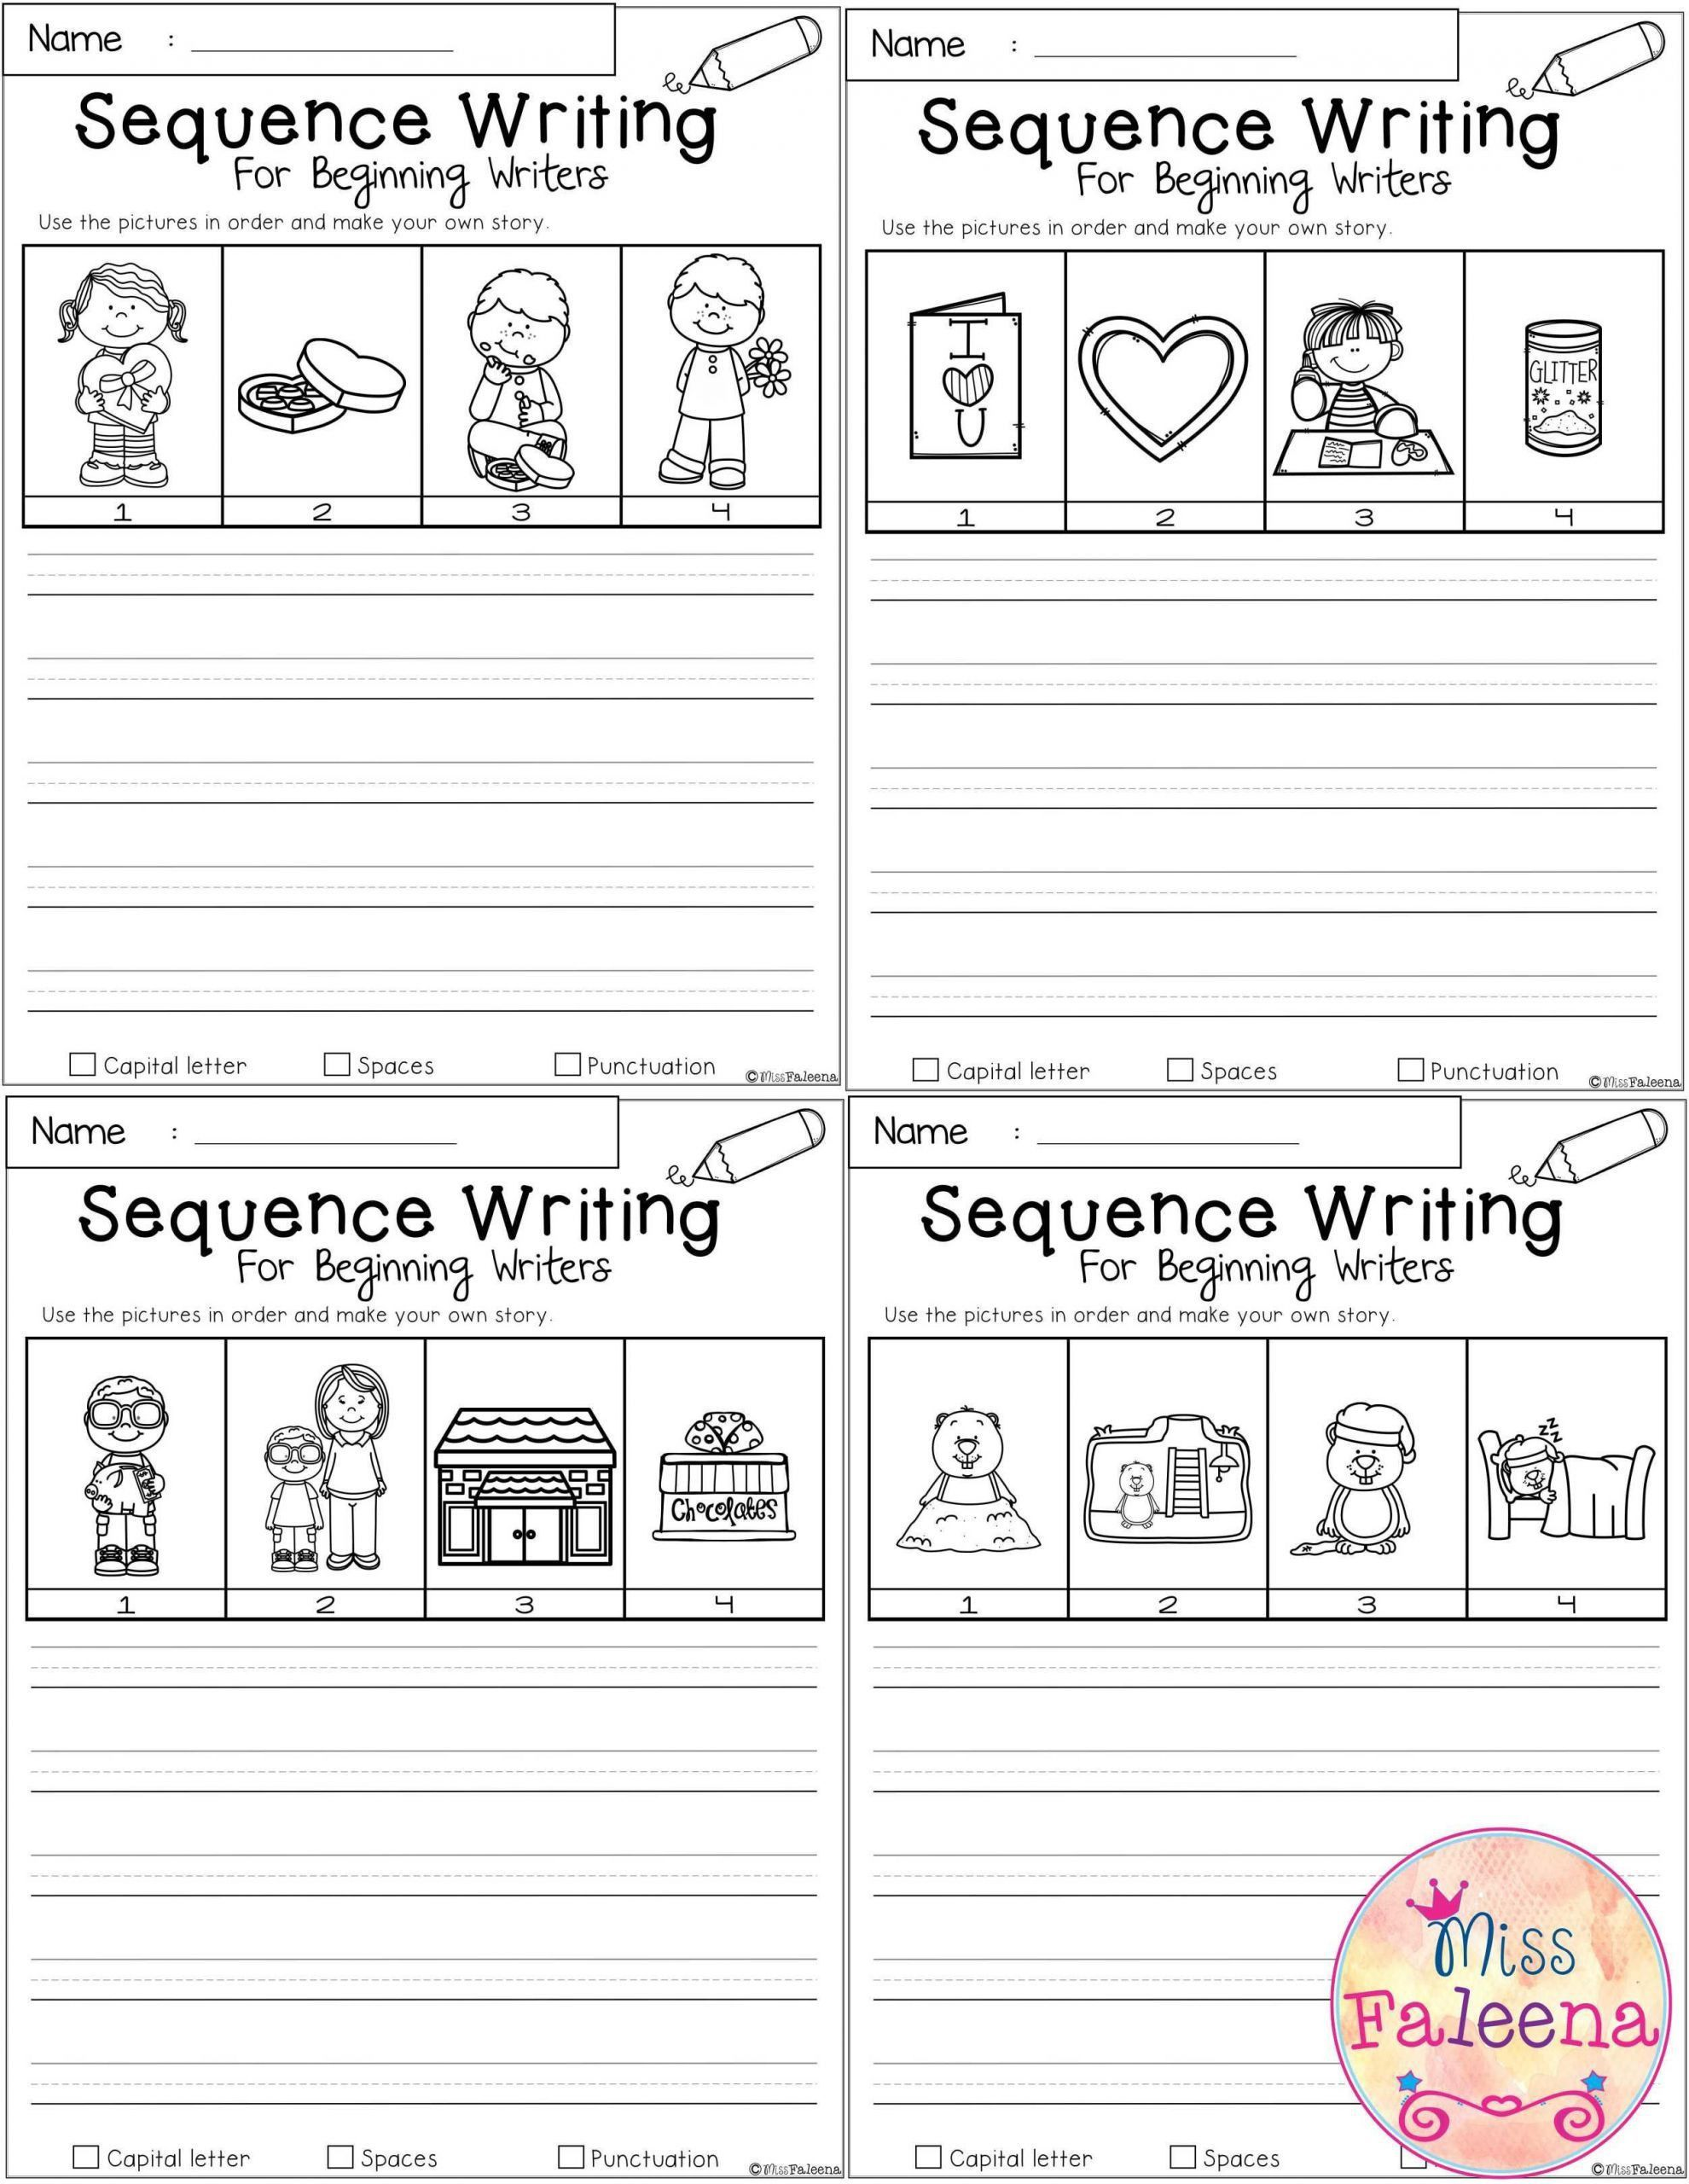 Sequence Worksheets 2nd Grade In 2020 Sequence Writing Writing Worksheets Story Sequencing Worksheets